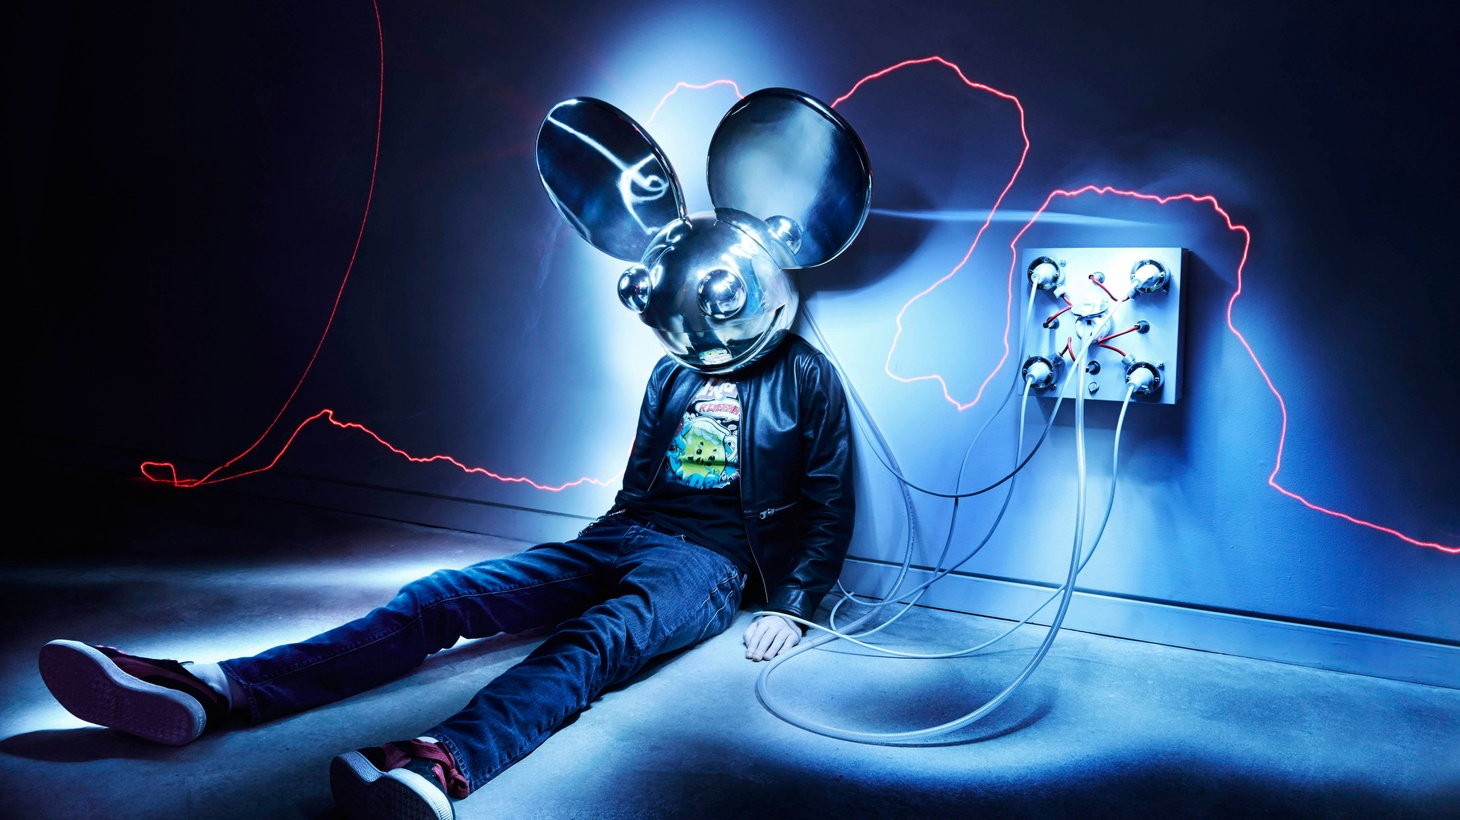 Deadmau5 aka Joel Zimmerman is one of EDM's biggest stars and he recently released an ambitious double CD.